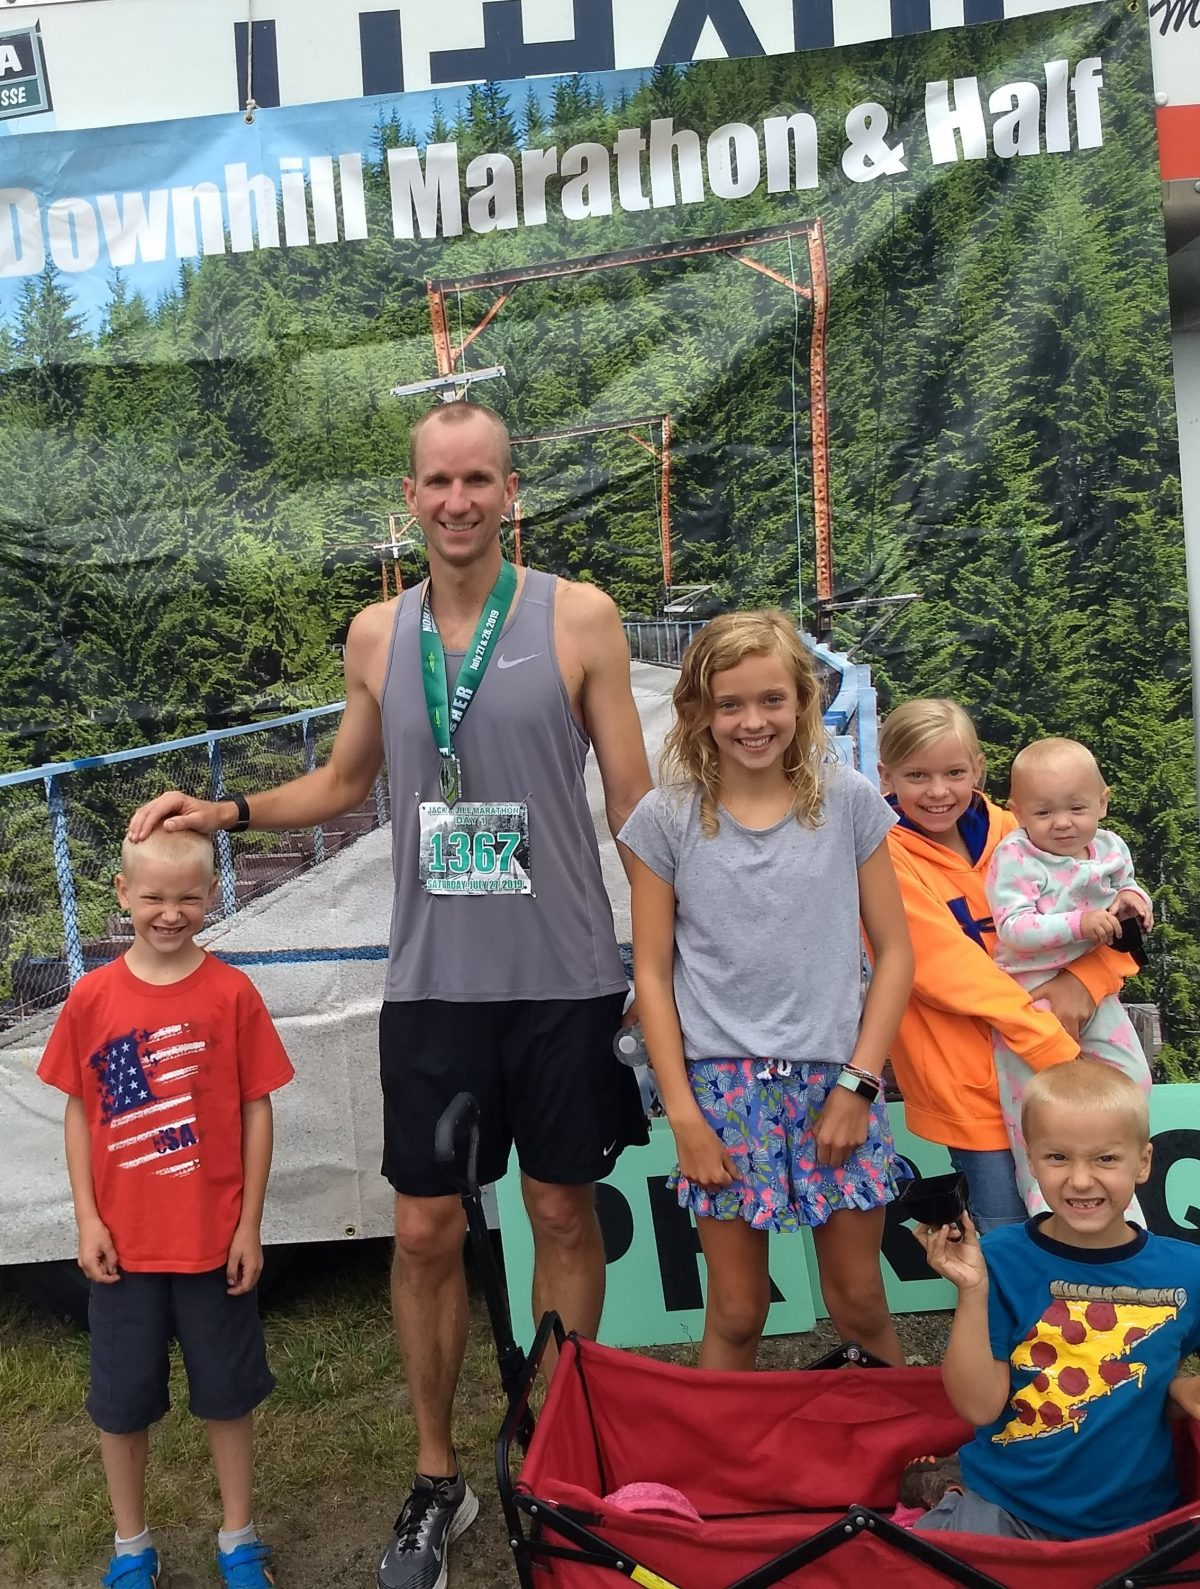 Jack and Jill's Downhill Marathon 2019